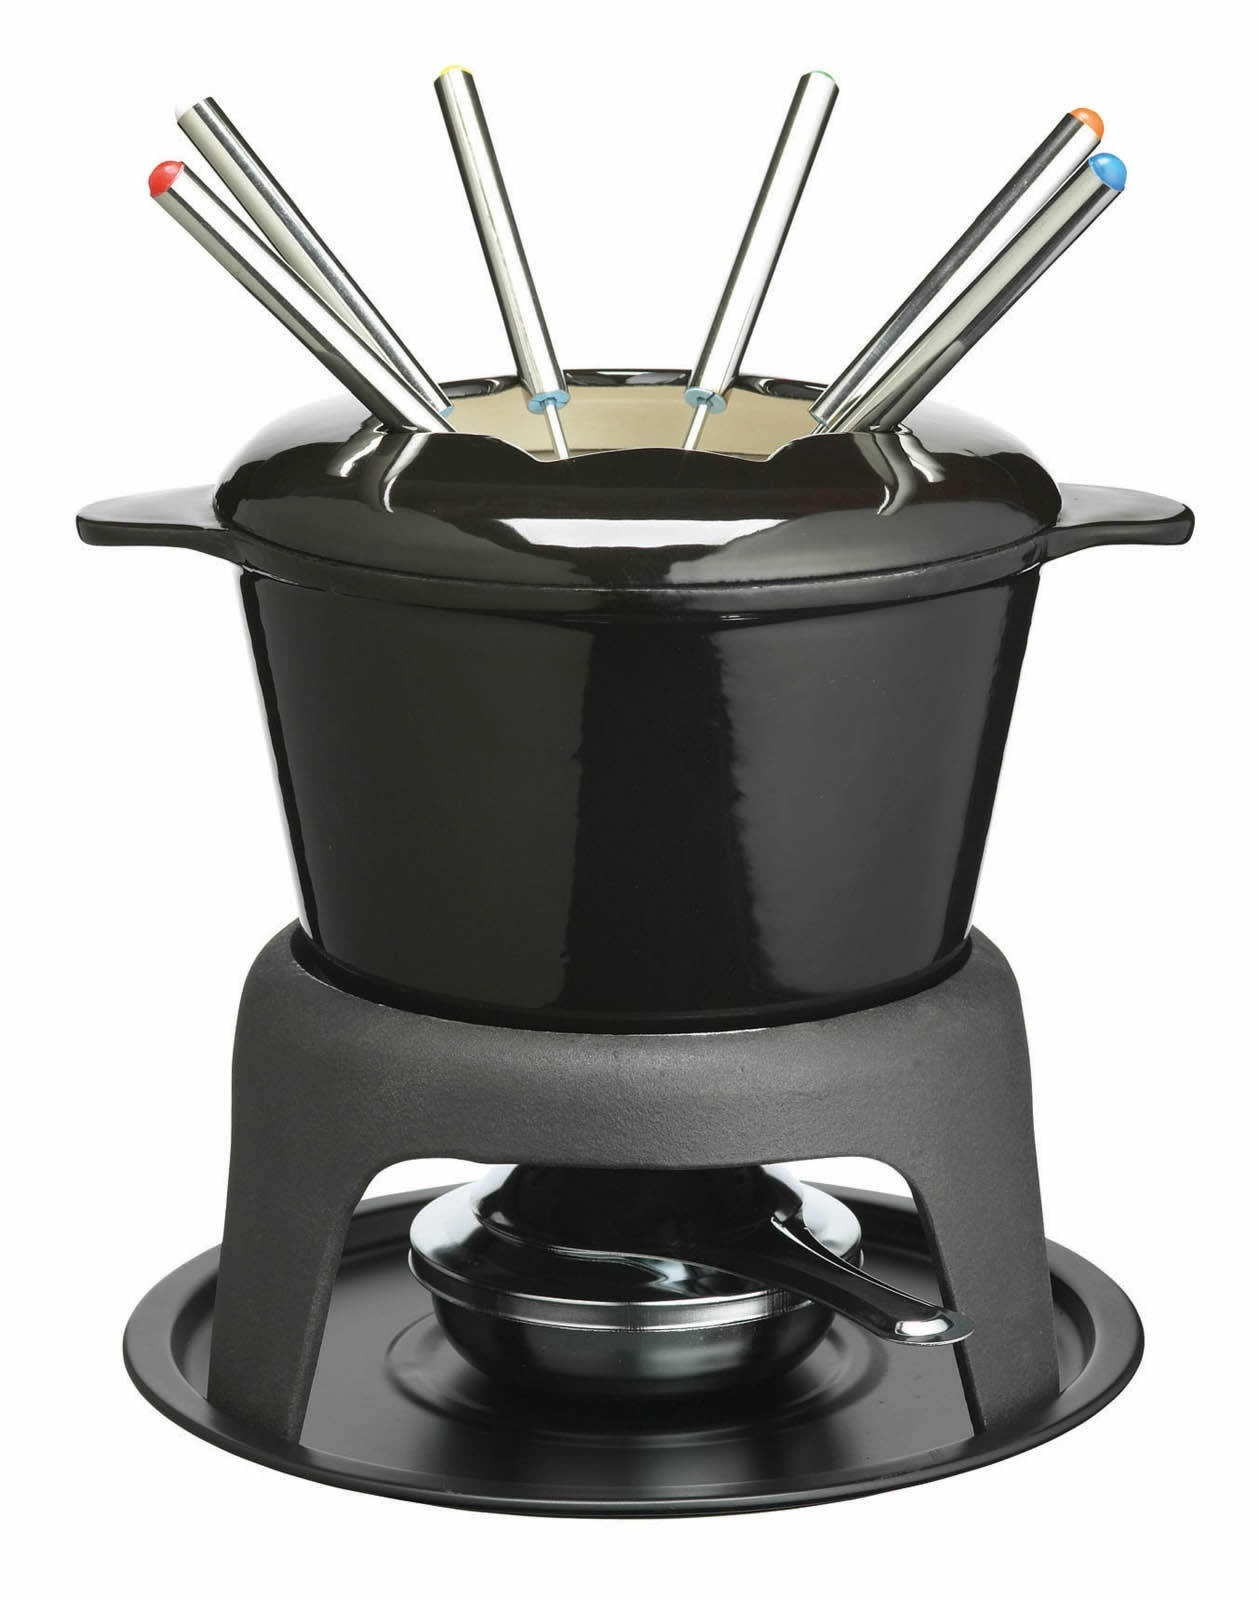 masterclass cast iron enamelled black fondue set cast iron cooking products kitchen craft. Black Bedroom Furniture Sets. Home Design Ideas